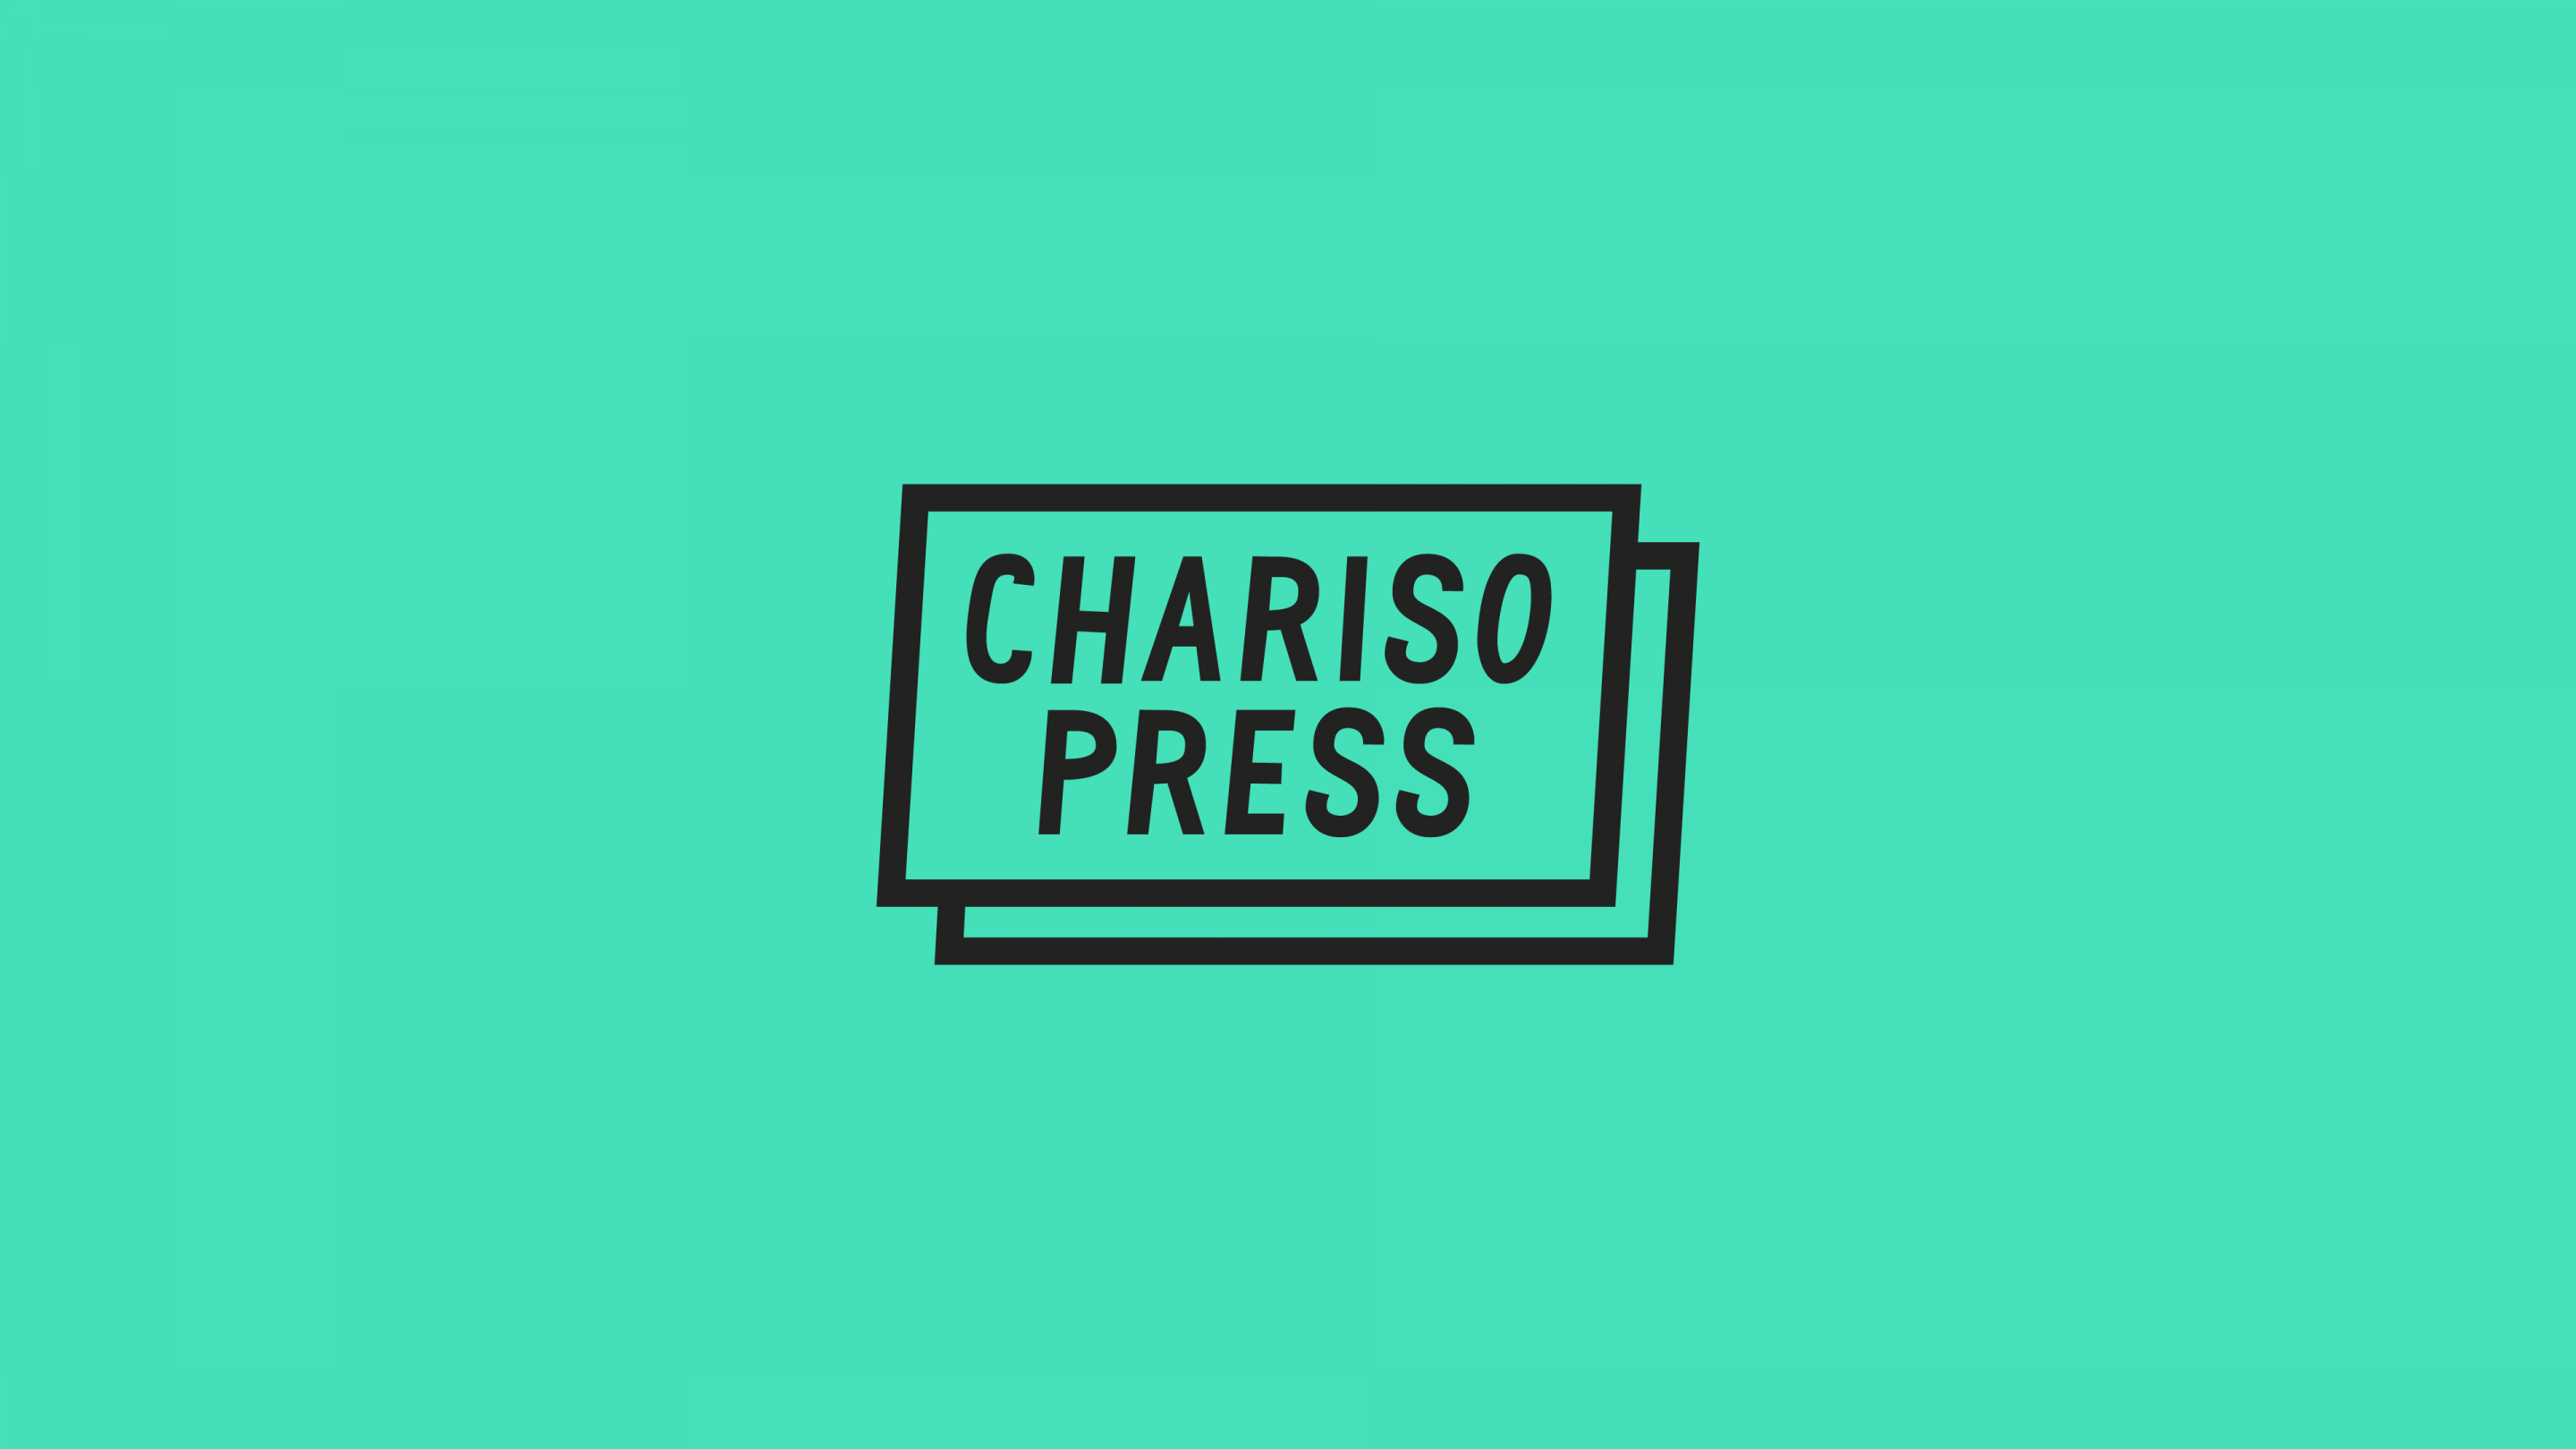 Chariso Press logo